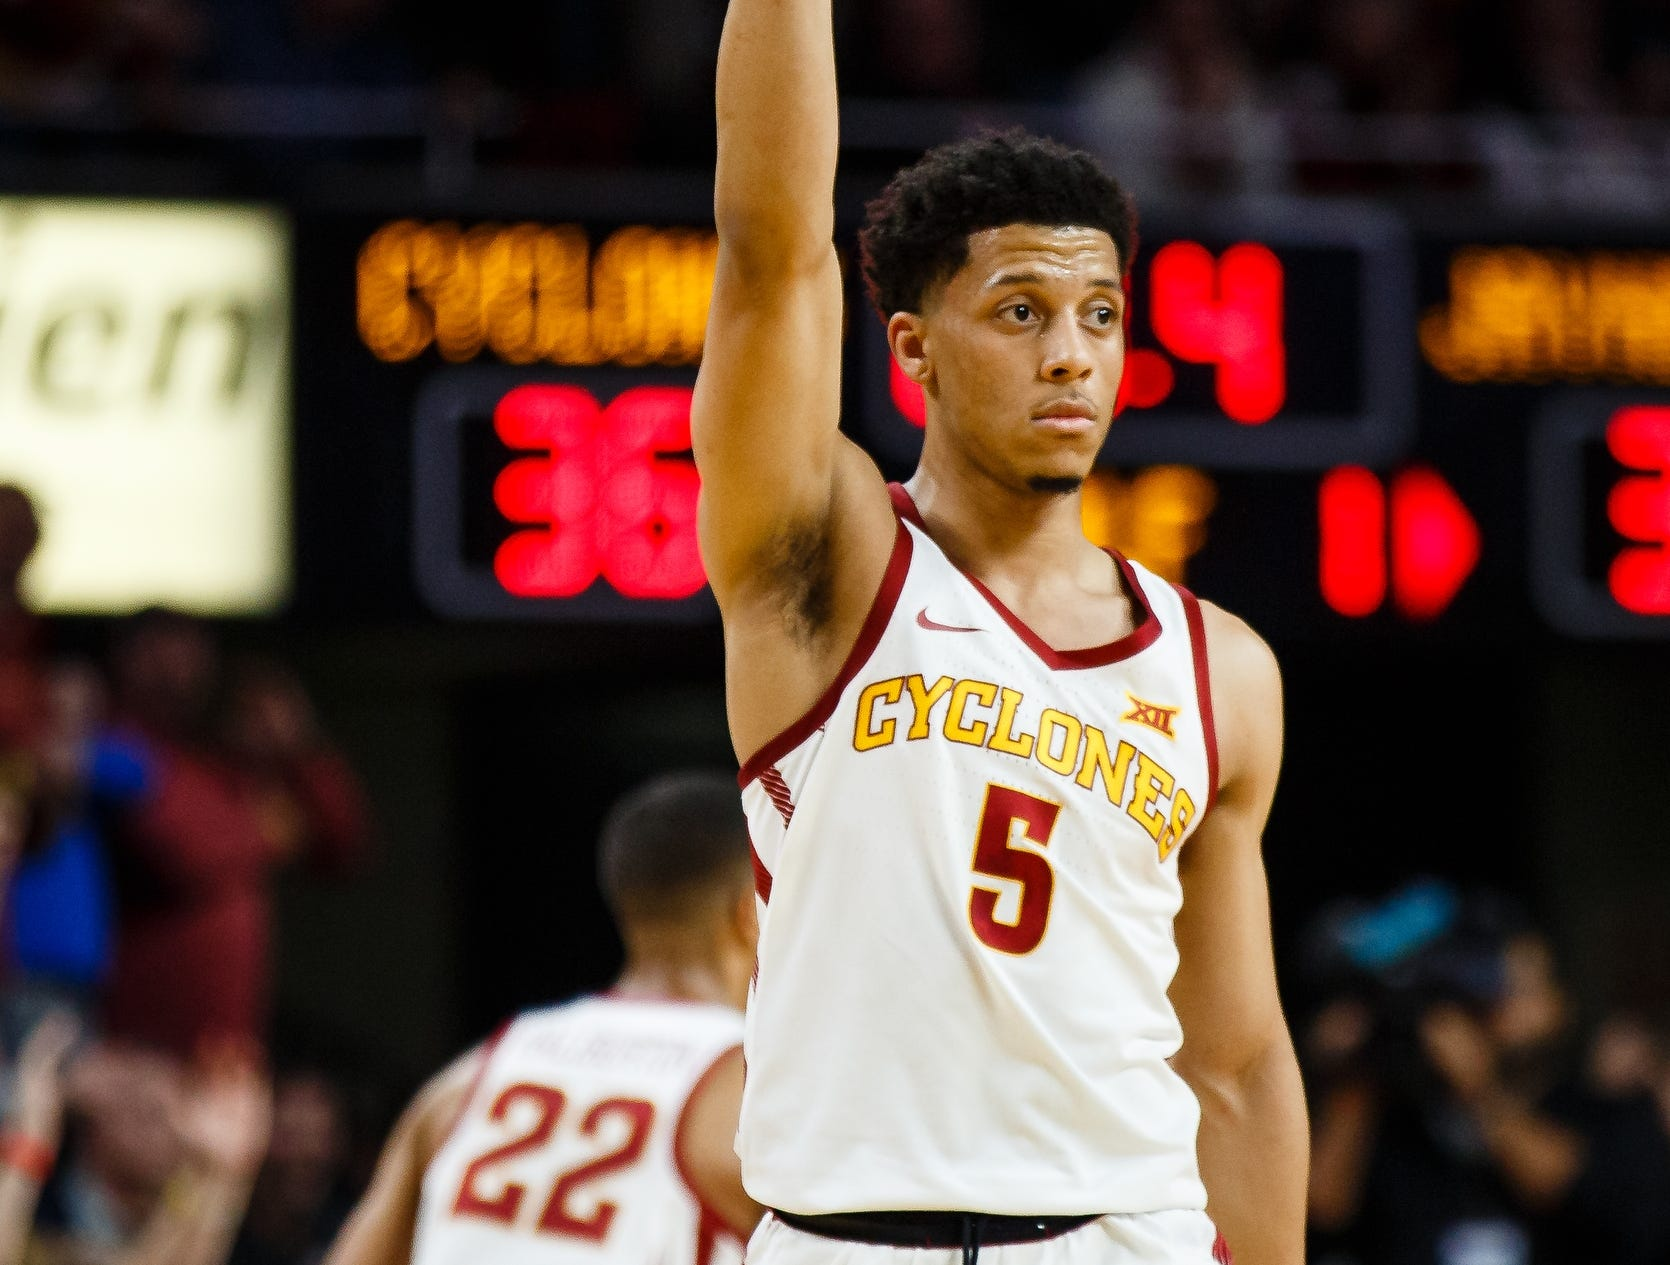 Iowa State's Lindell Wigginton (5) reacts to hitting a three point shot during the first half of their basketball game on Saturday, Jan. 5, 2019, in Ames. Iowa State would go on to win 77-60.